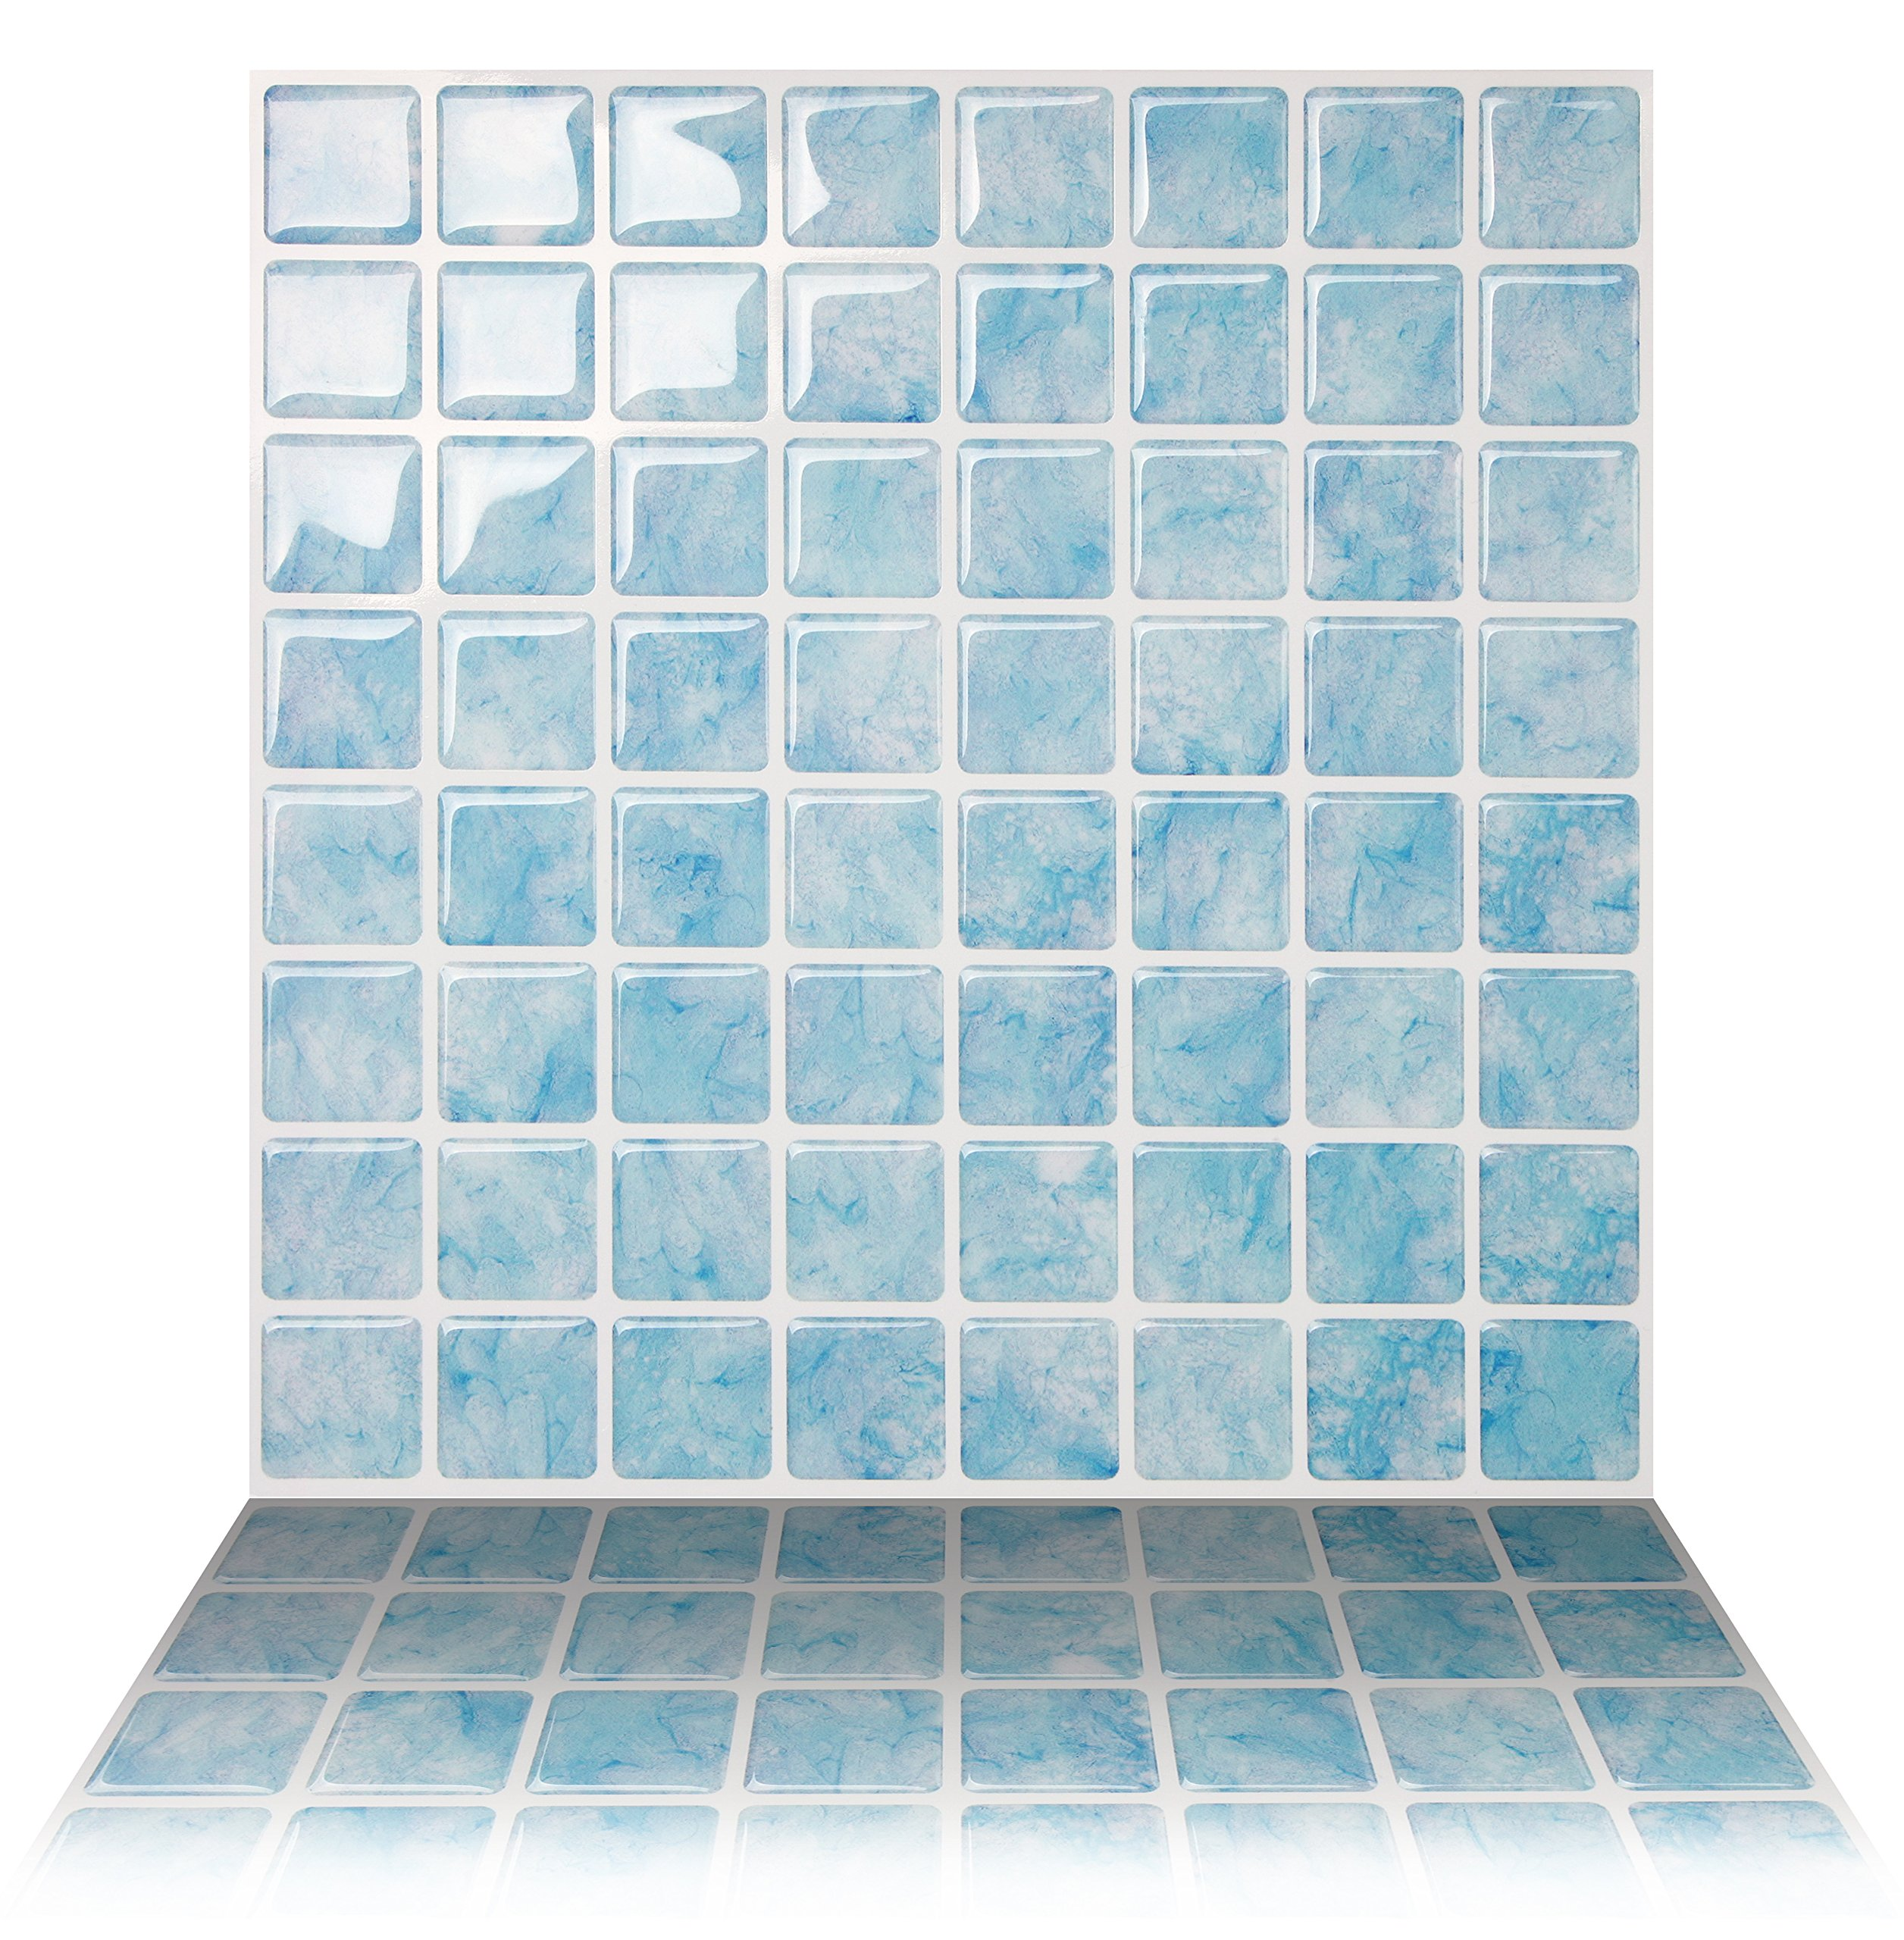 Tic Tac Tiles 10-Sheet Peel and Stick Self Adhesive Removable Stick On Kitchen Backsplash Bathroom 3D Wall Sticker Wallpaper Tiles in Vetro Aqua by Tic Tac Tiles